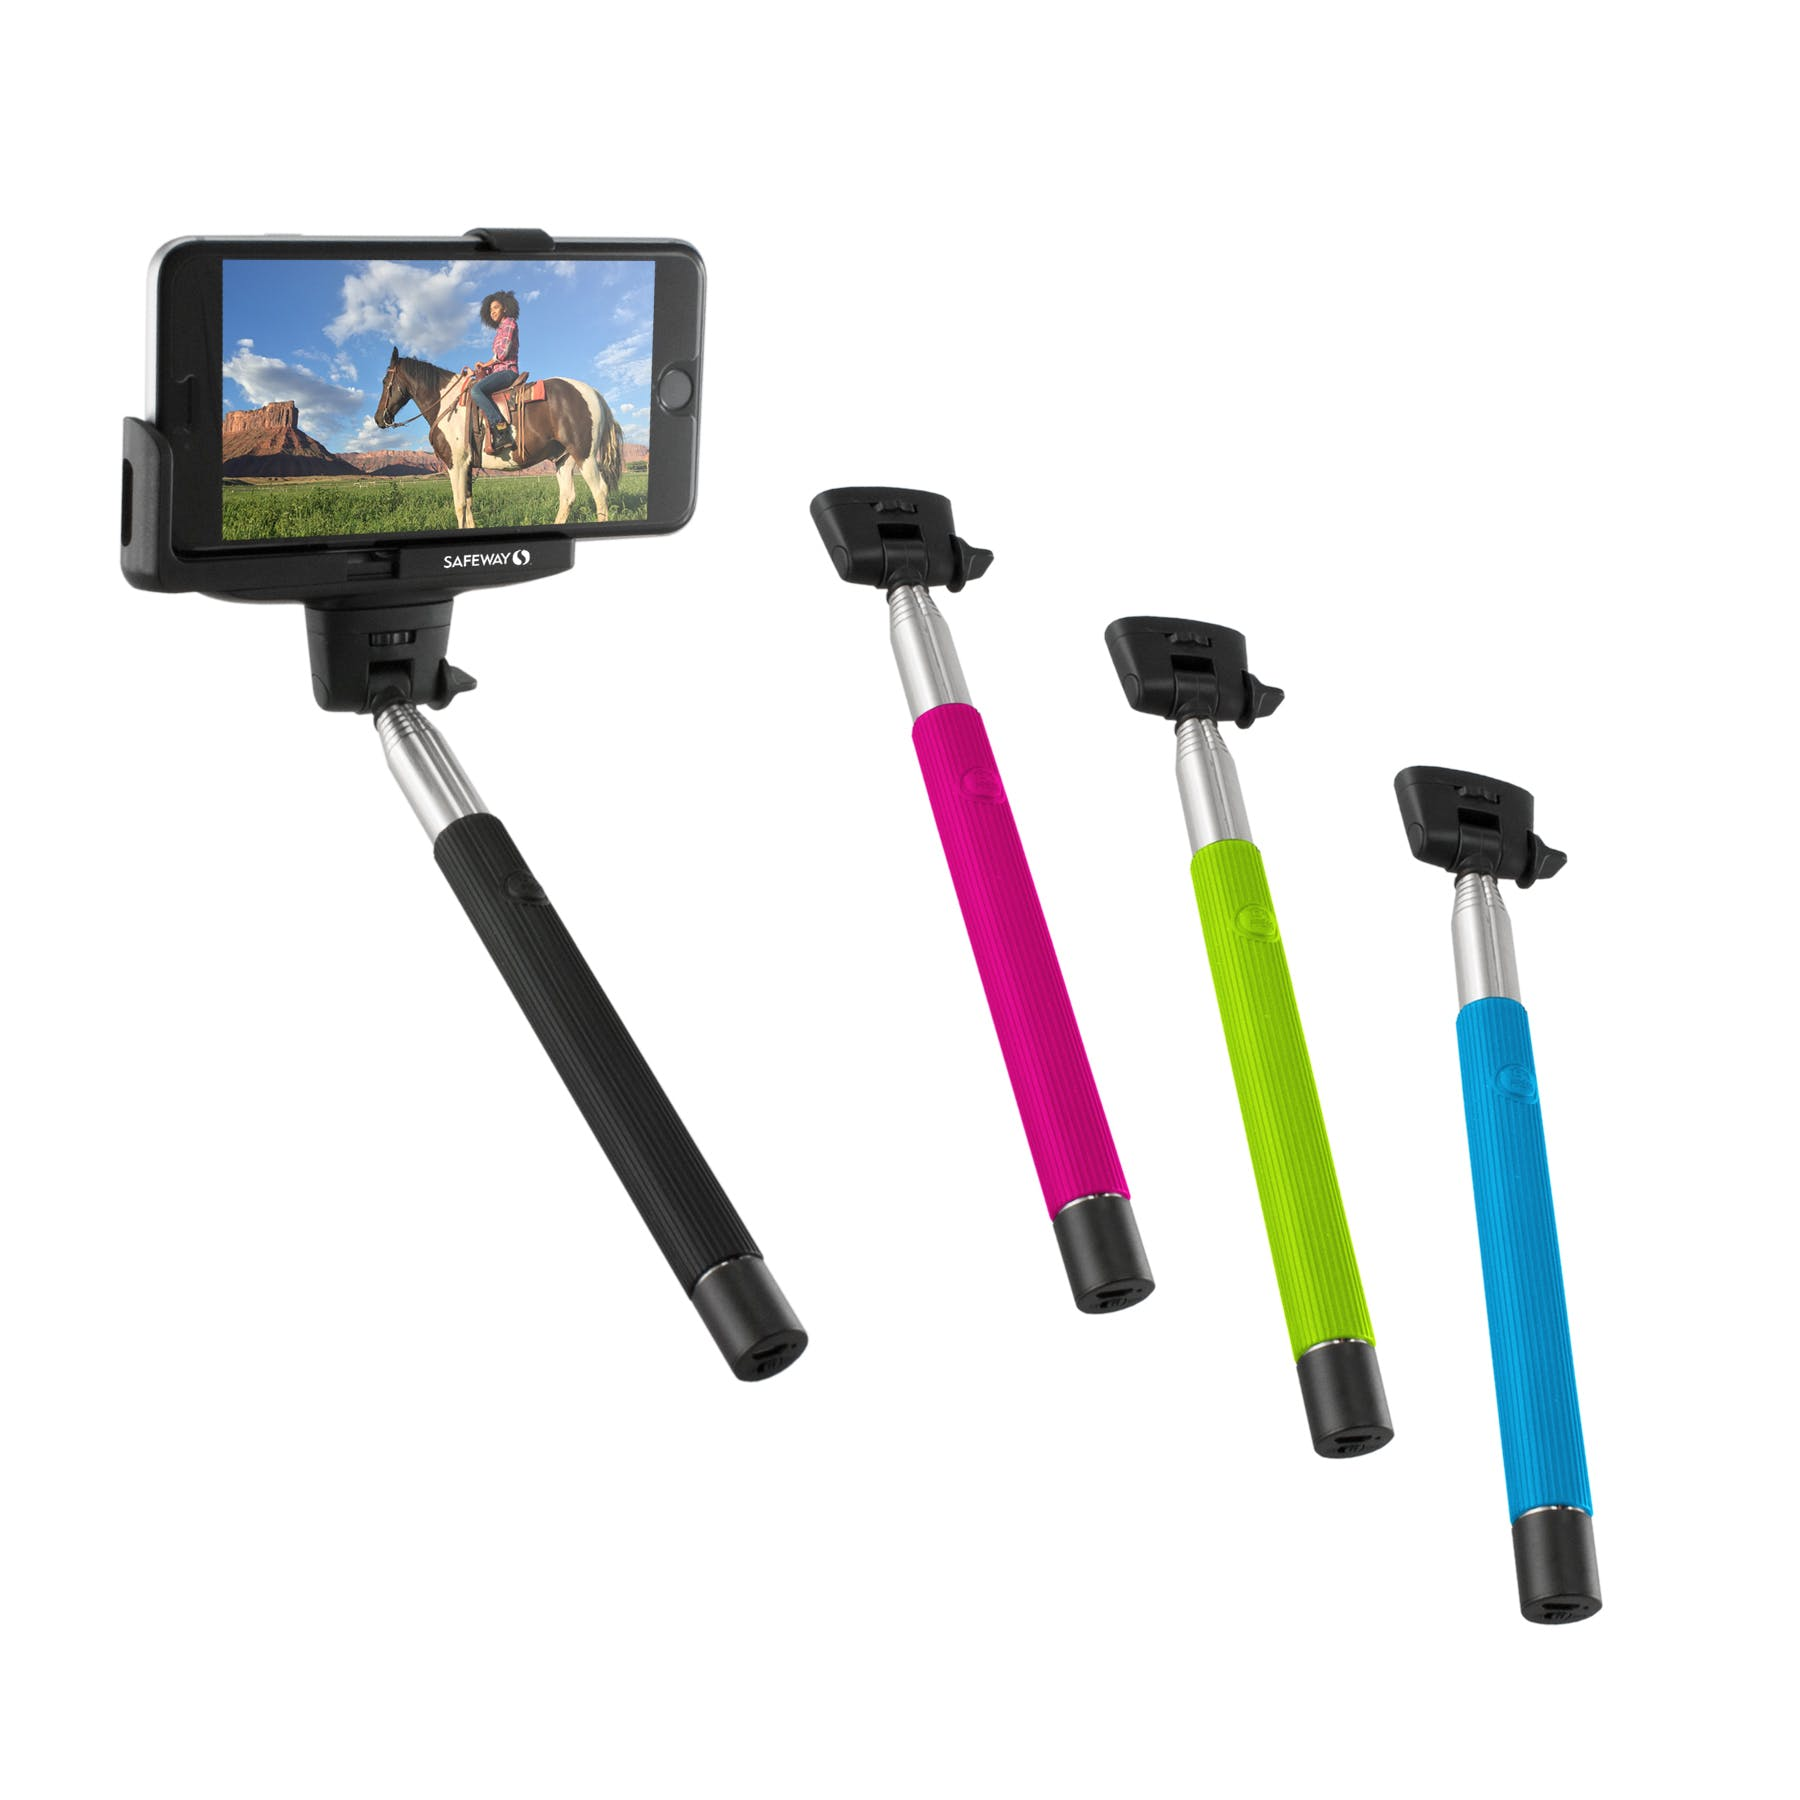 Selfie Stick (Item # PEMON-KAIZE) Promotional product sold by InkEasy